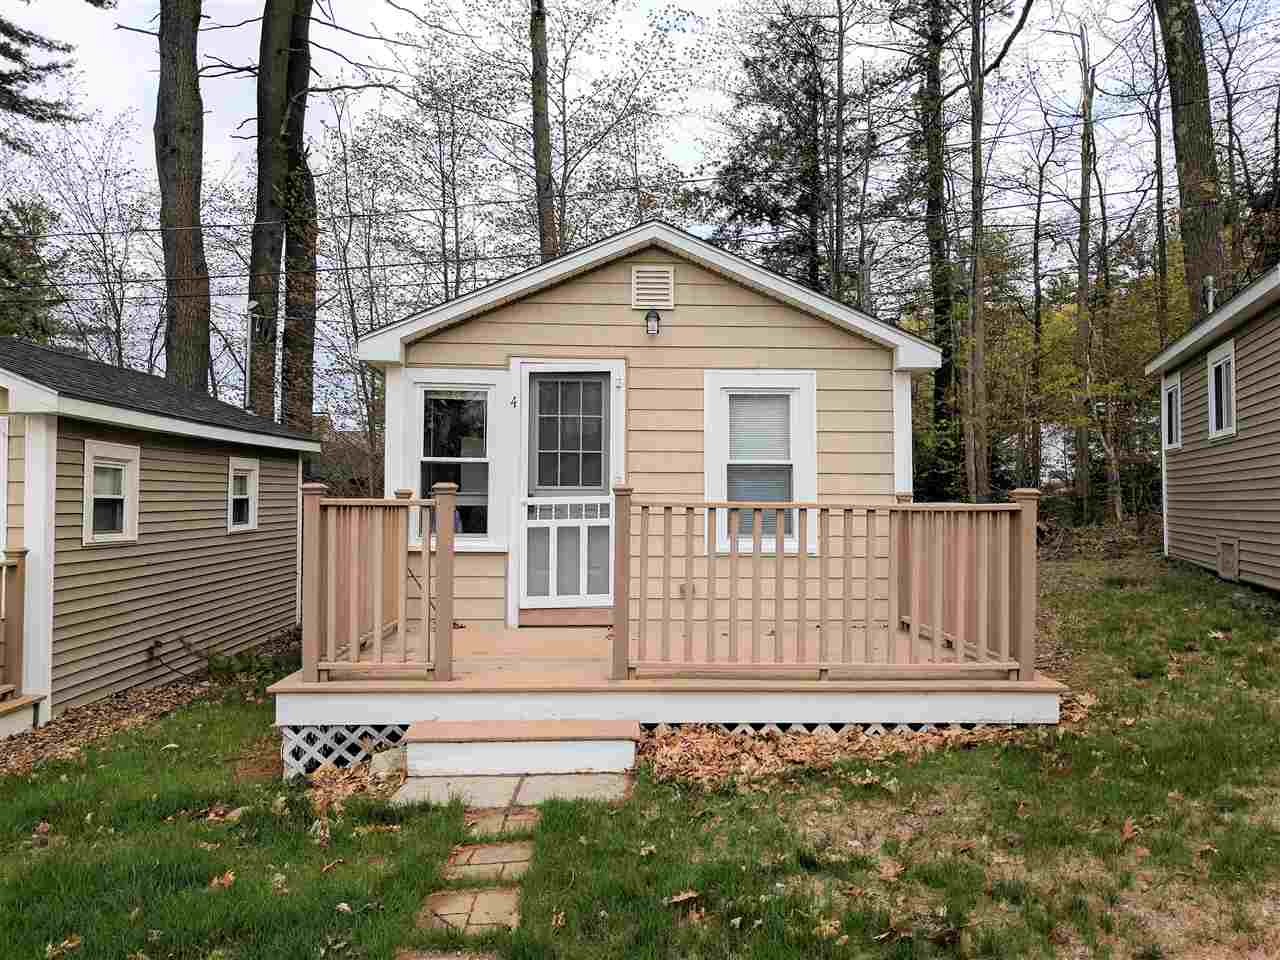 277 Weirs Boulevard, Laconia, NH 03246